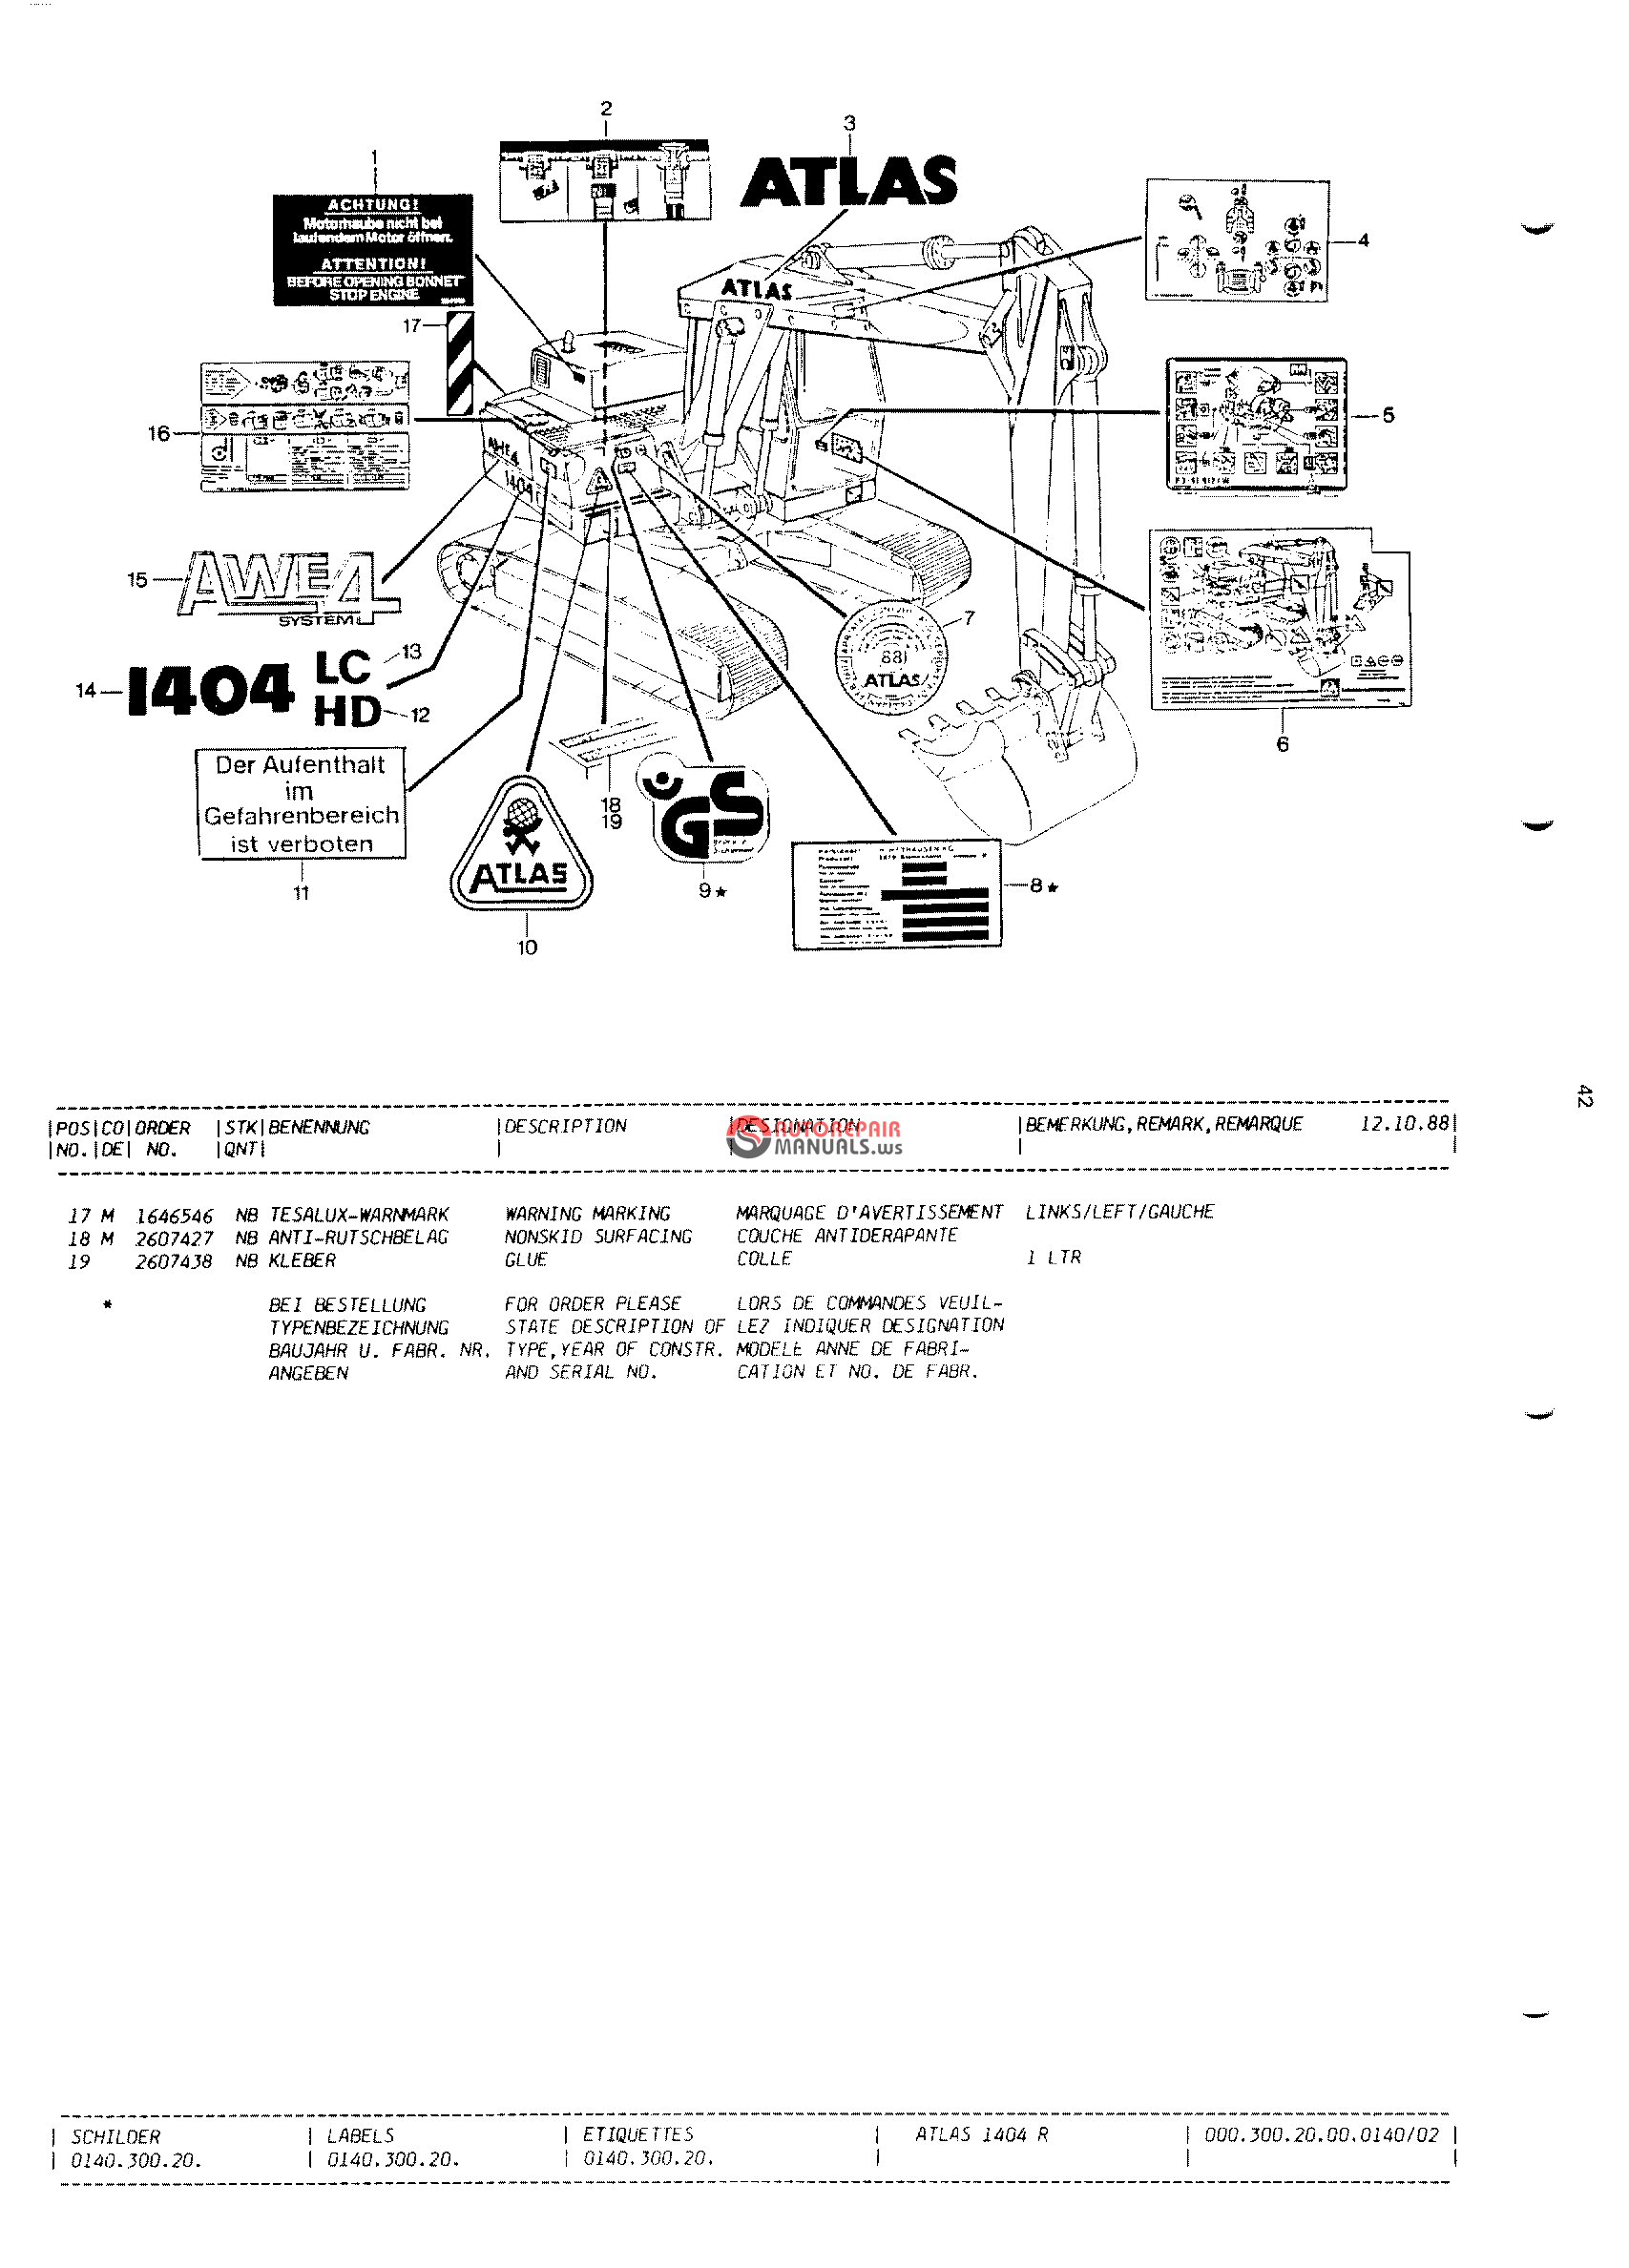 Atlas Copco Compressors Manuals Today Manual Guide Trends Sample Wiring Schematic Wheel Excavator 1404 Spare Parts Auto Repair Wire Diagram Xas85 1984